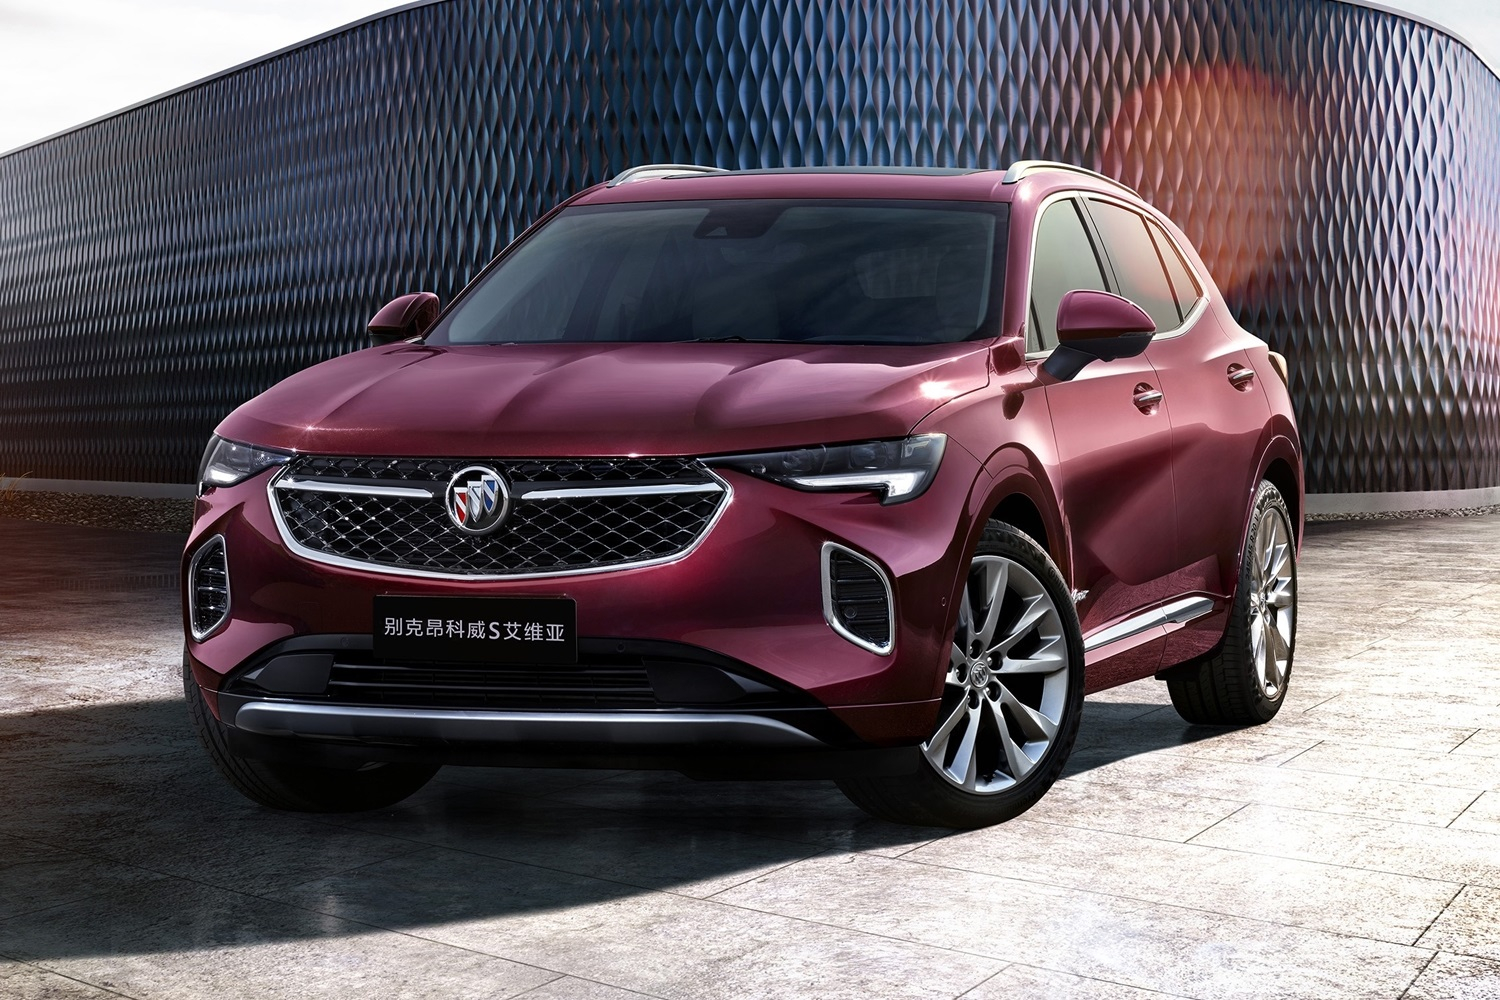 Range-Topping 2021 Buick Envision Avenir Revealed | Gm Authority New 2022 Buick Envision Test Drive, Tire Size, Used